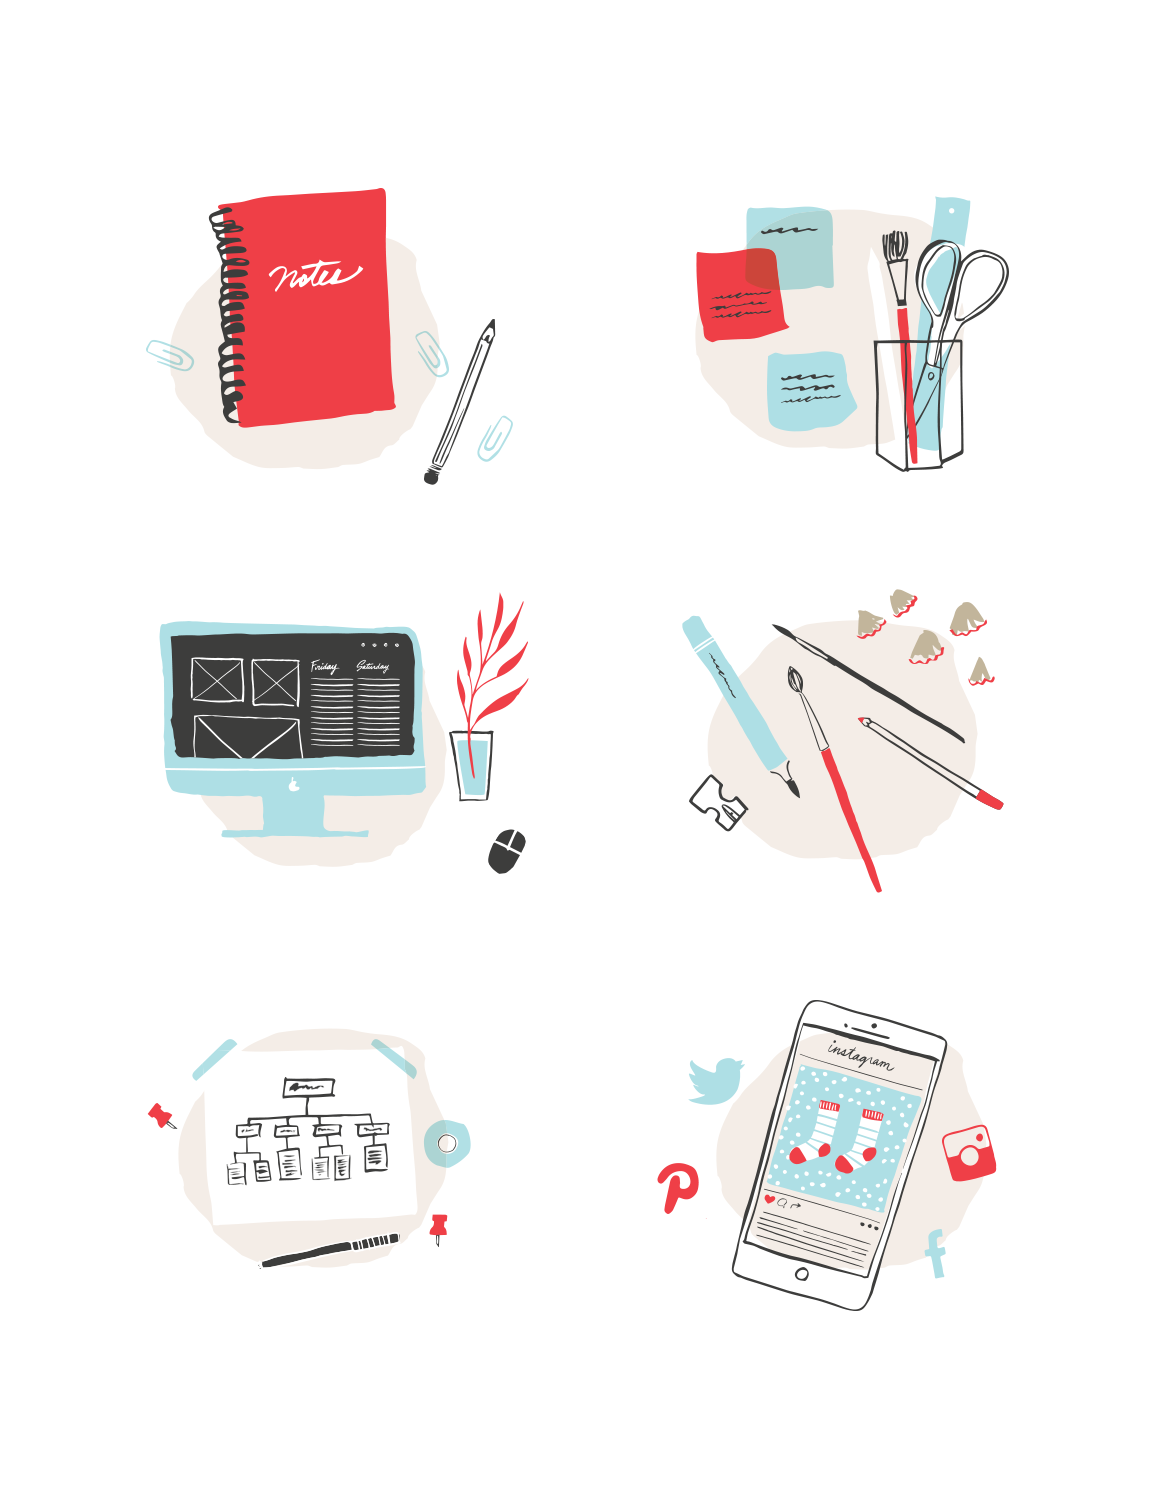 One Plus One Design - Service Illustrations